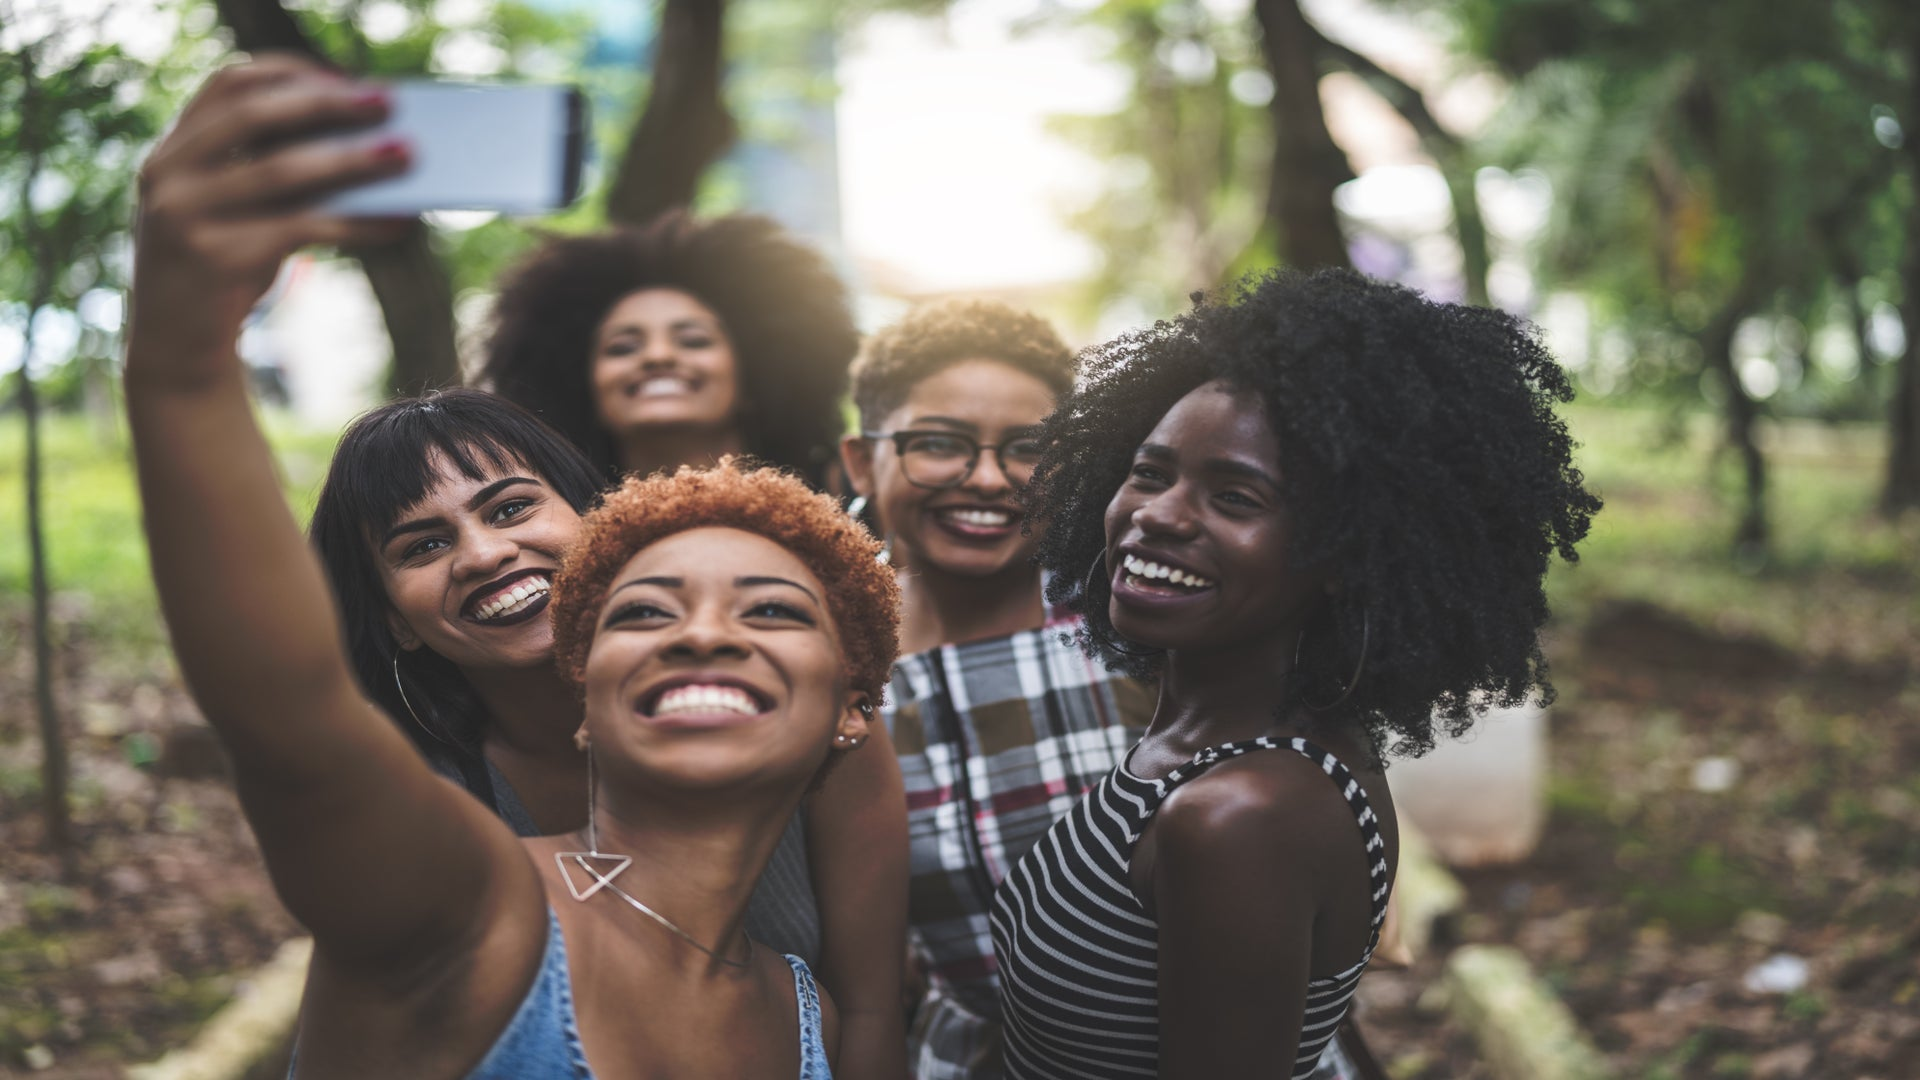 Why We Should Stop Telling 30+ Black Women They Look Good 'For Their Age'